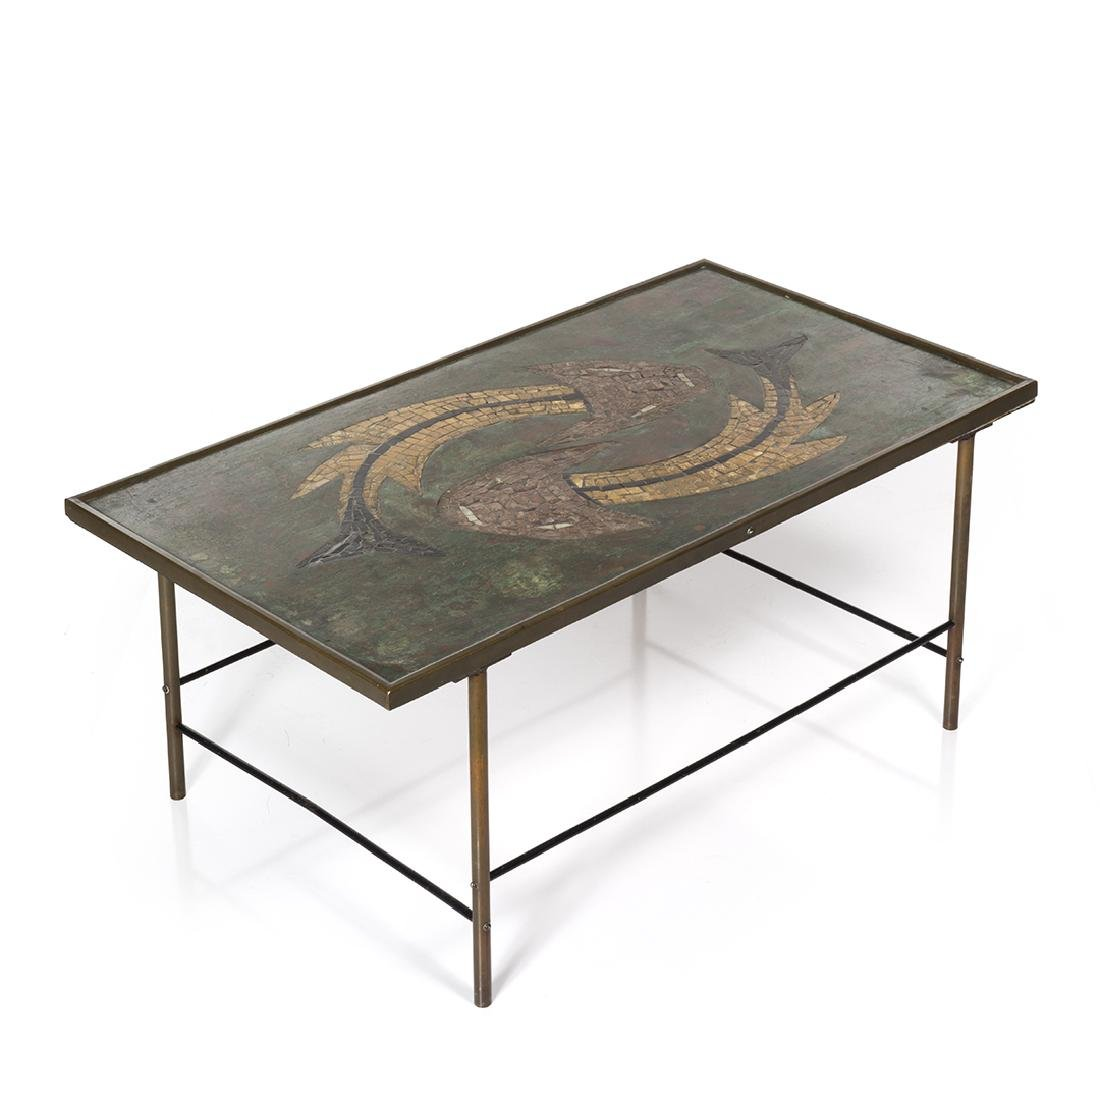 French Bronze and Tile Coffee Table